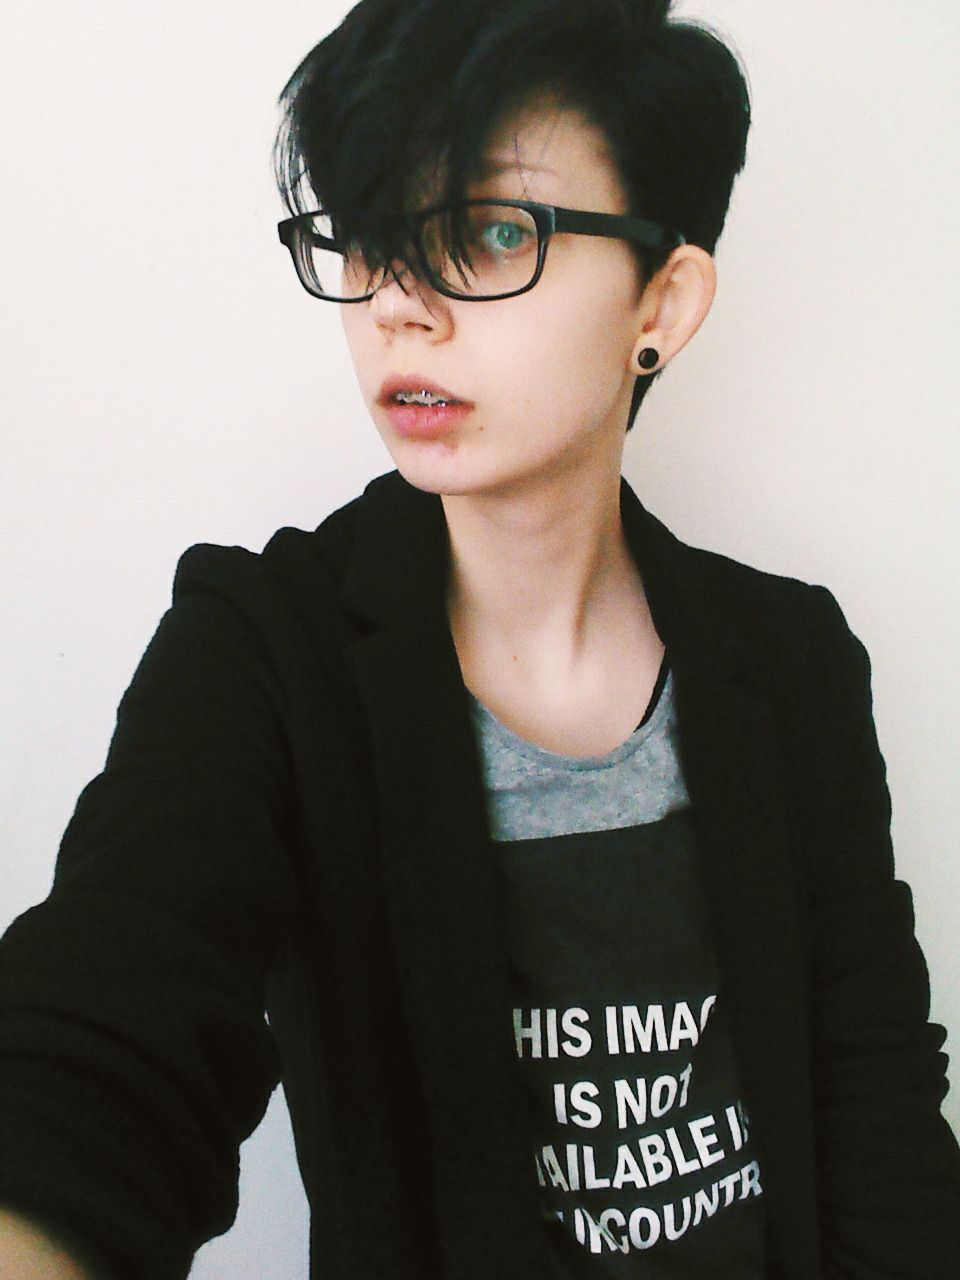 Coolest Humans Mens Haircuts Pinterest Haircuts Hair Style